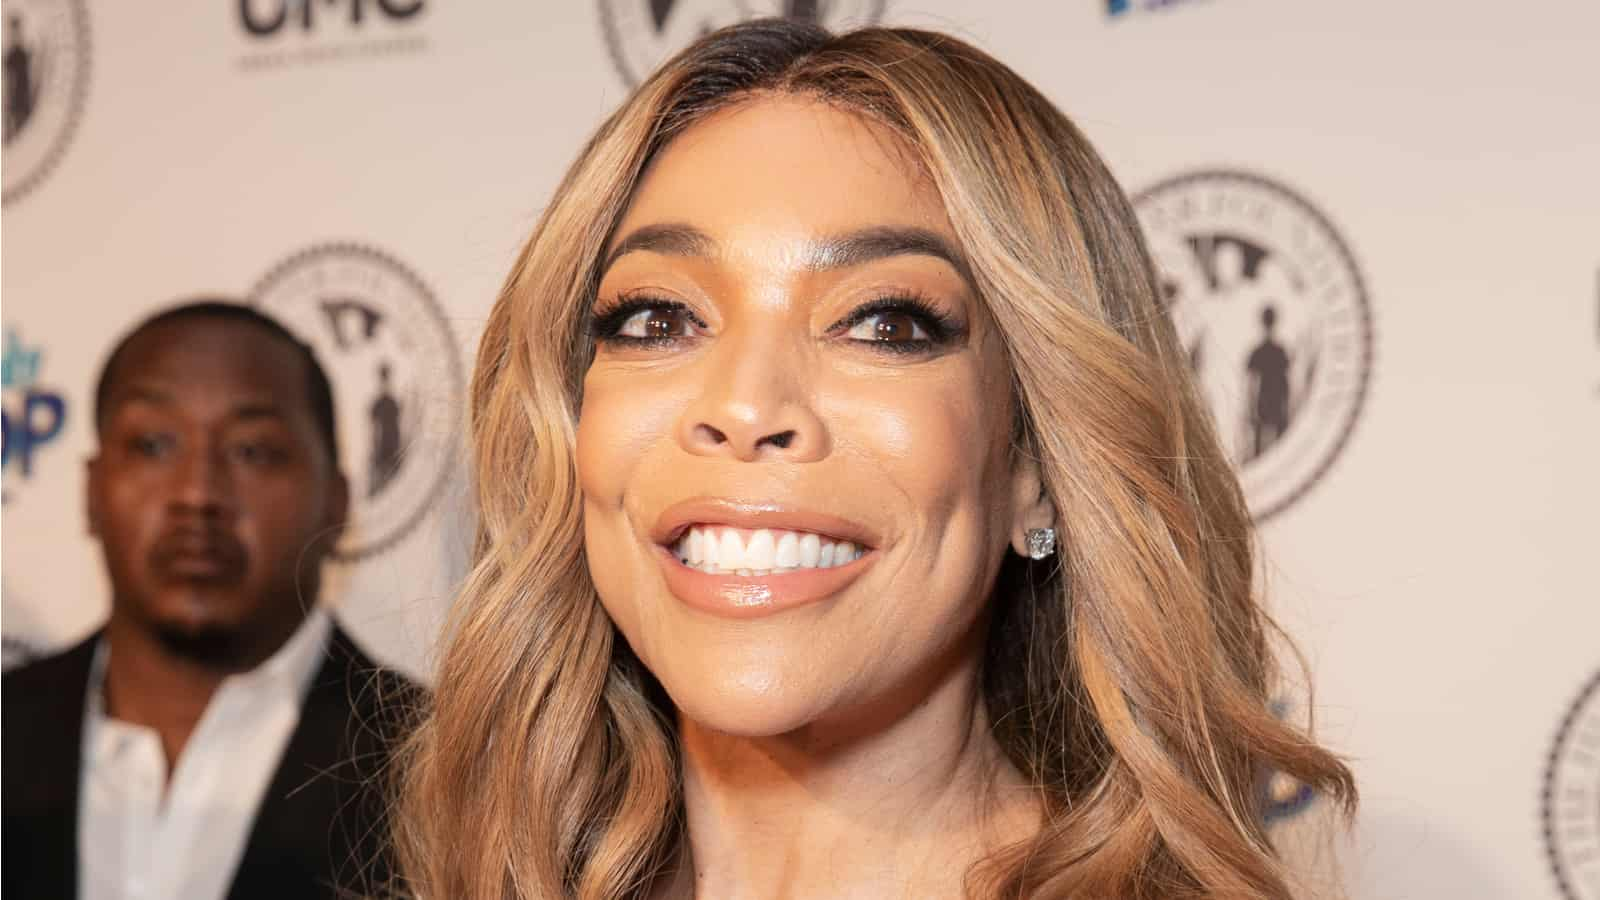 wendy-williams-thinks-jussie-smollett-should-leave-empire-even-after-the-charges-against-him-were-dropped